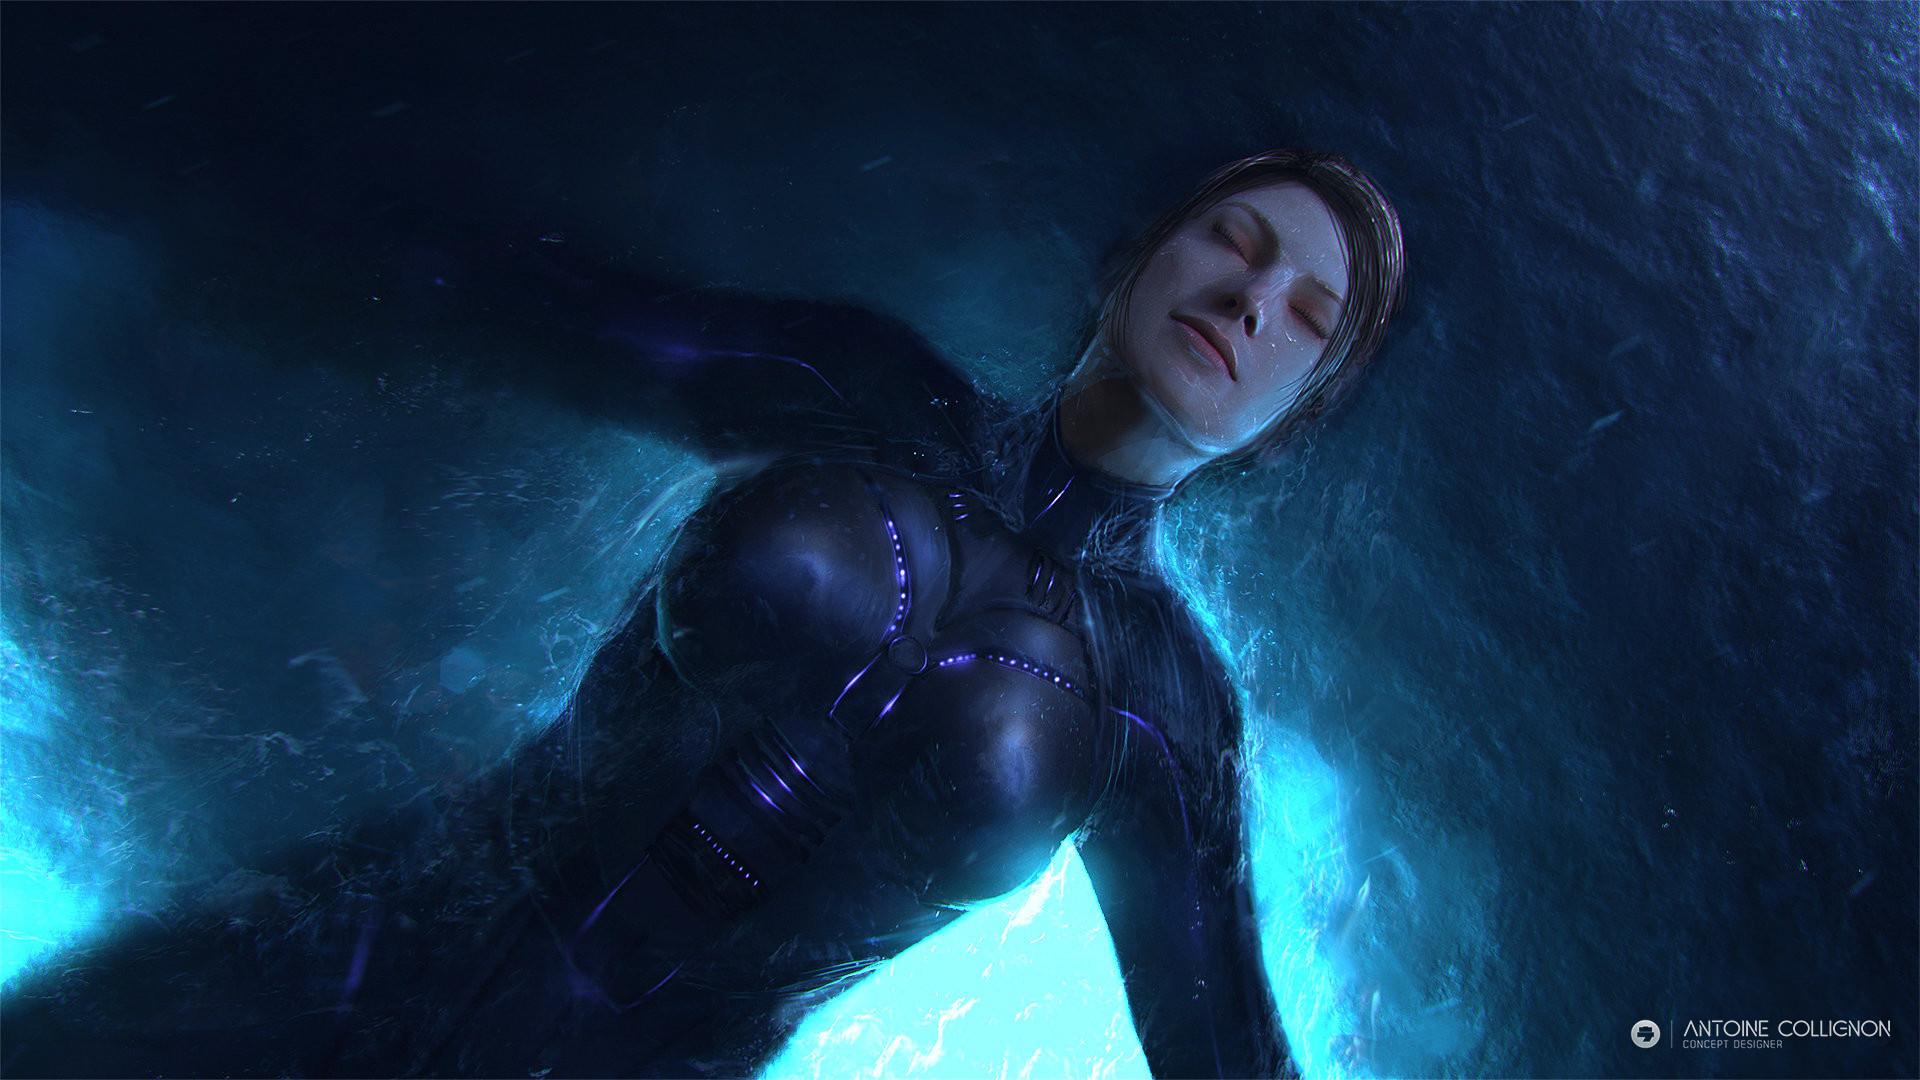 Antoine collignon swiming